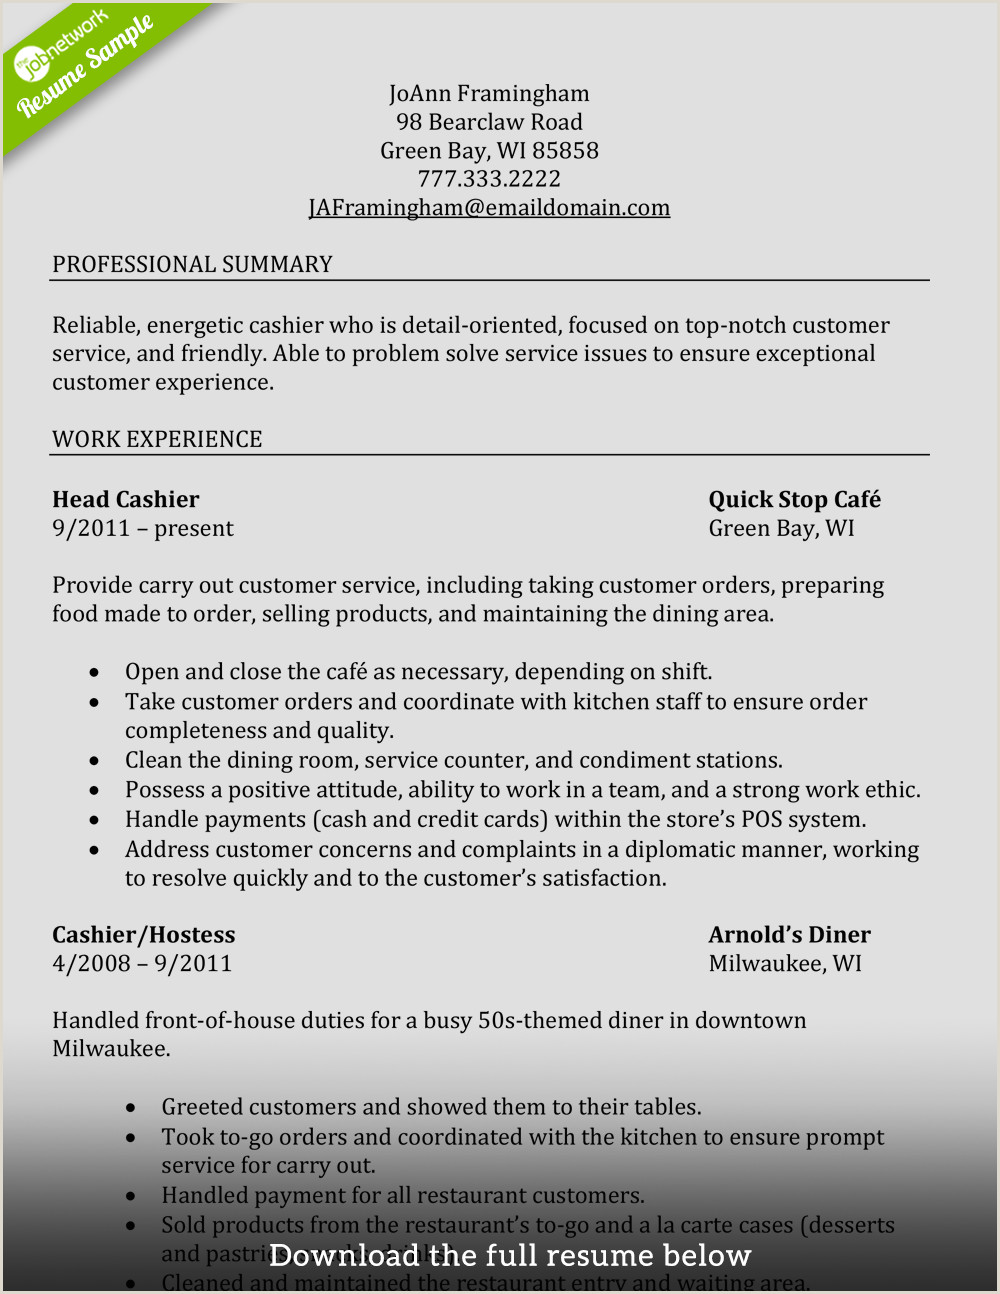 Cv format for Cashier Job Restaurant Cashier Resume Samples Velvet Jobs How to Write A